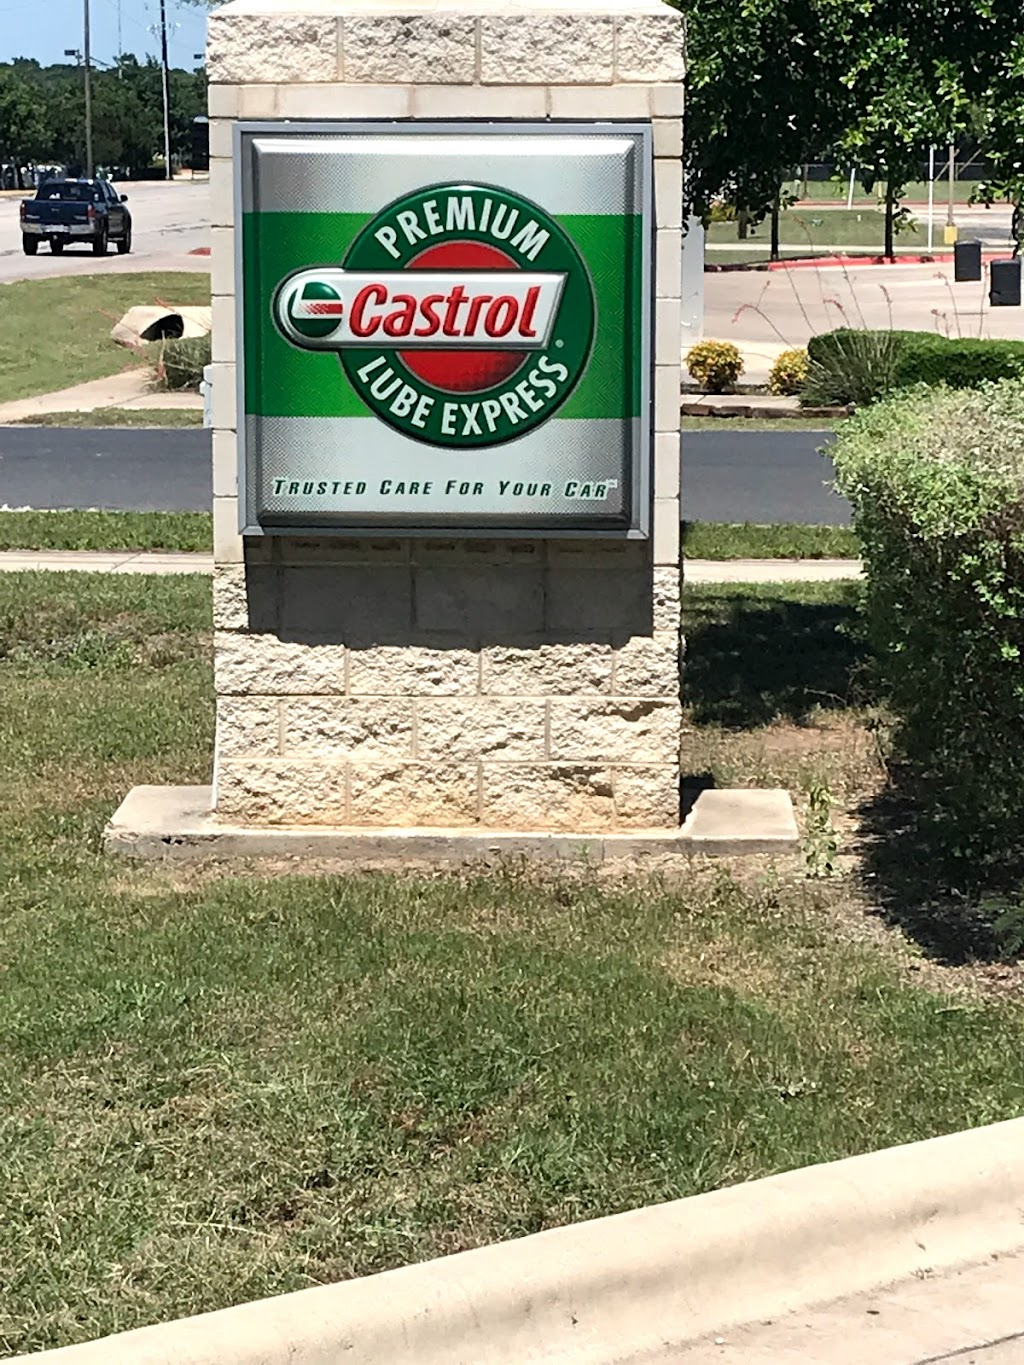 Castrol Premium Lube Express - car repair  | Photo 4 of 10 | Address: CPLE, 400 Crystal Falls Pkwy STORE # 1566, Leander, TX 78641, USA | Phone: (512) 528-1514